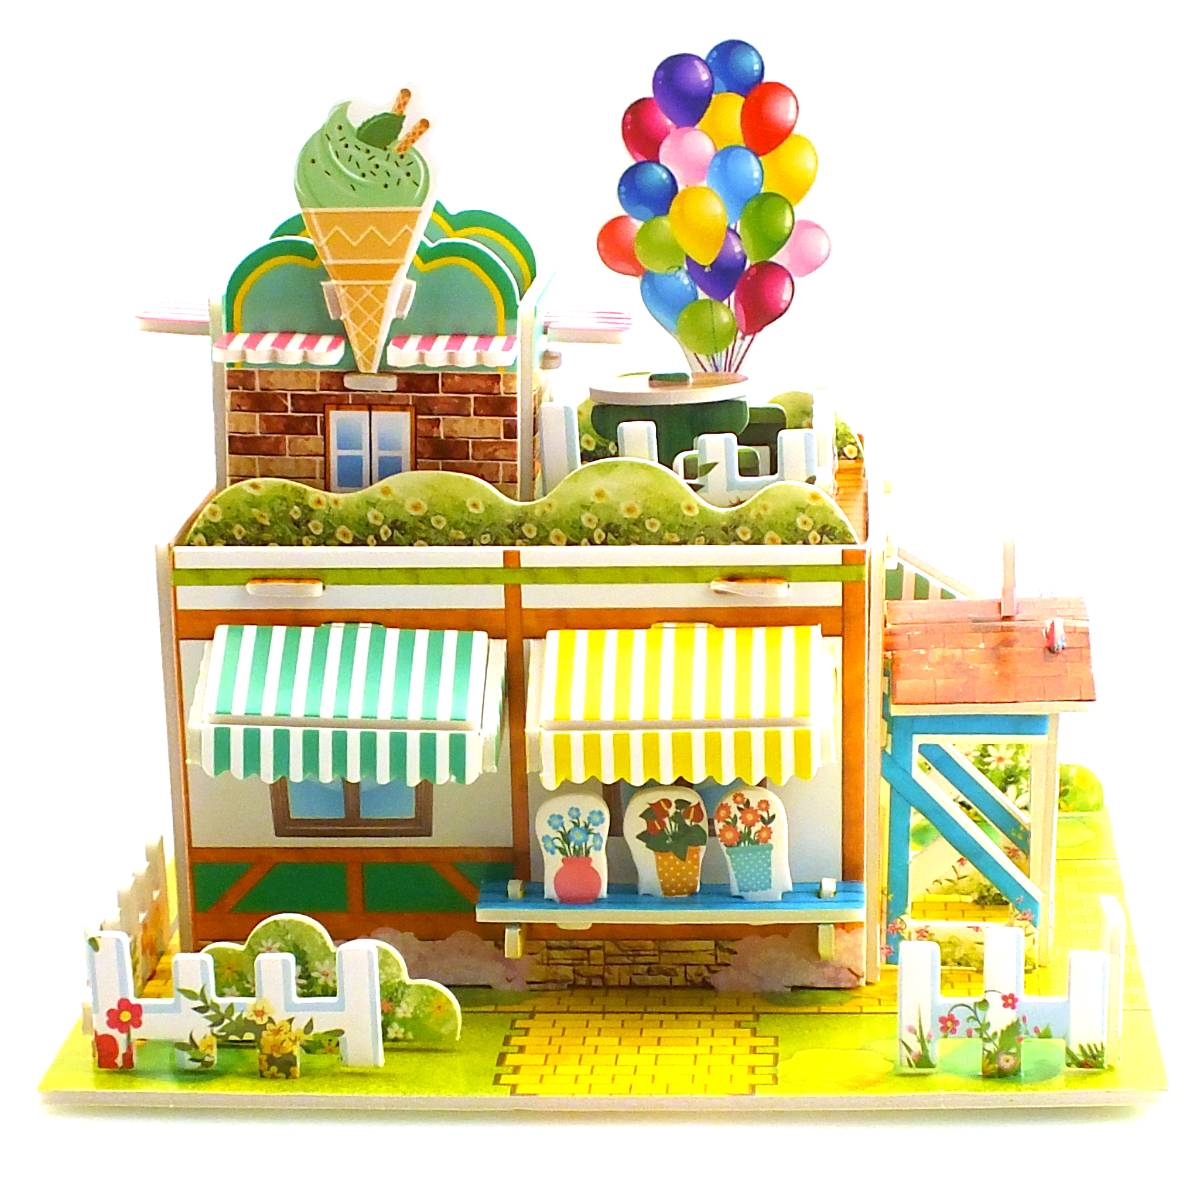 Mini Puzzle 3D | ICE CREAM HOUSE | Puzzle 3 Dimensi Rumah - 1690-42